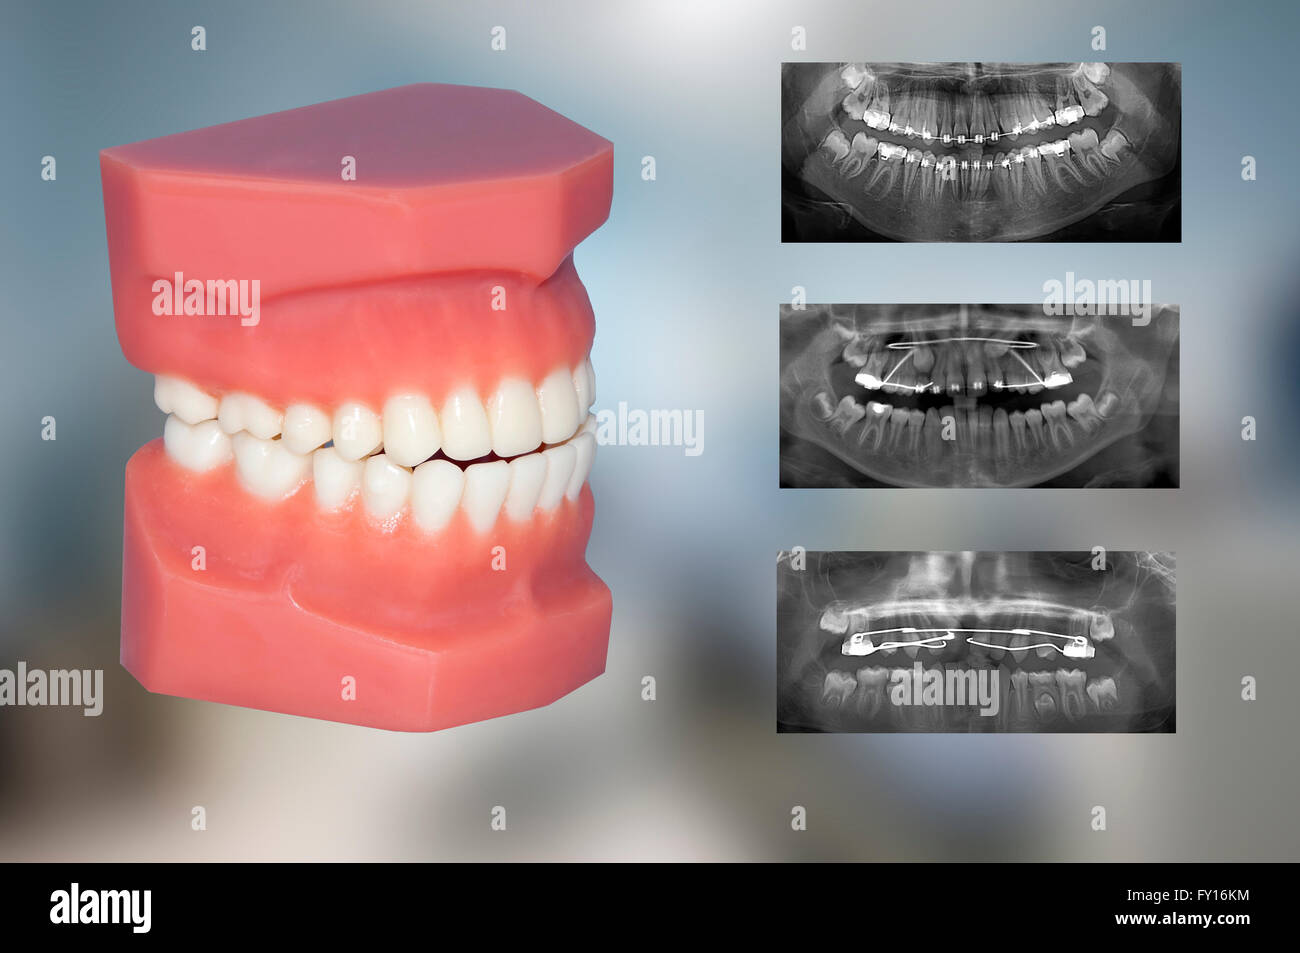 teeth model and different types of appliances - Stock Image